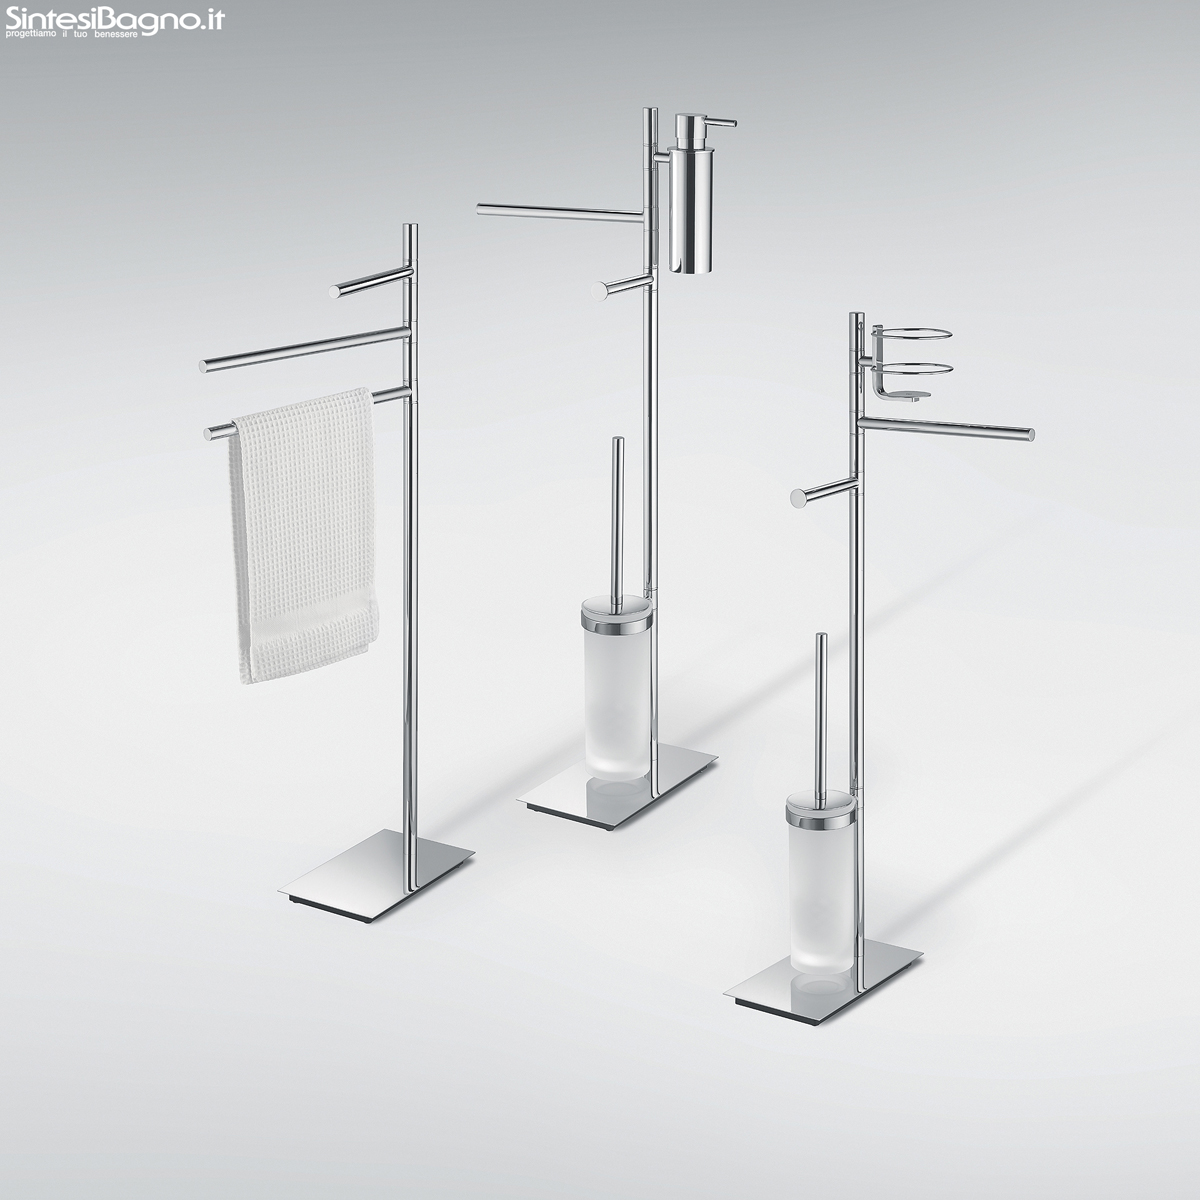 Piantane e colonne serie square di colombo design for Accessori bagno online